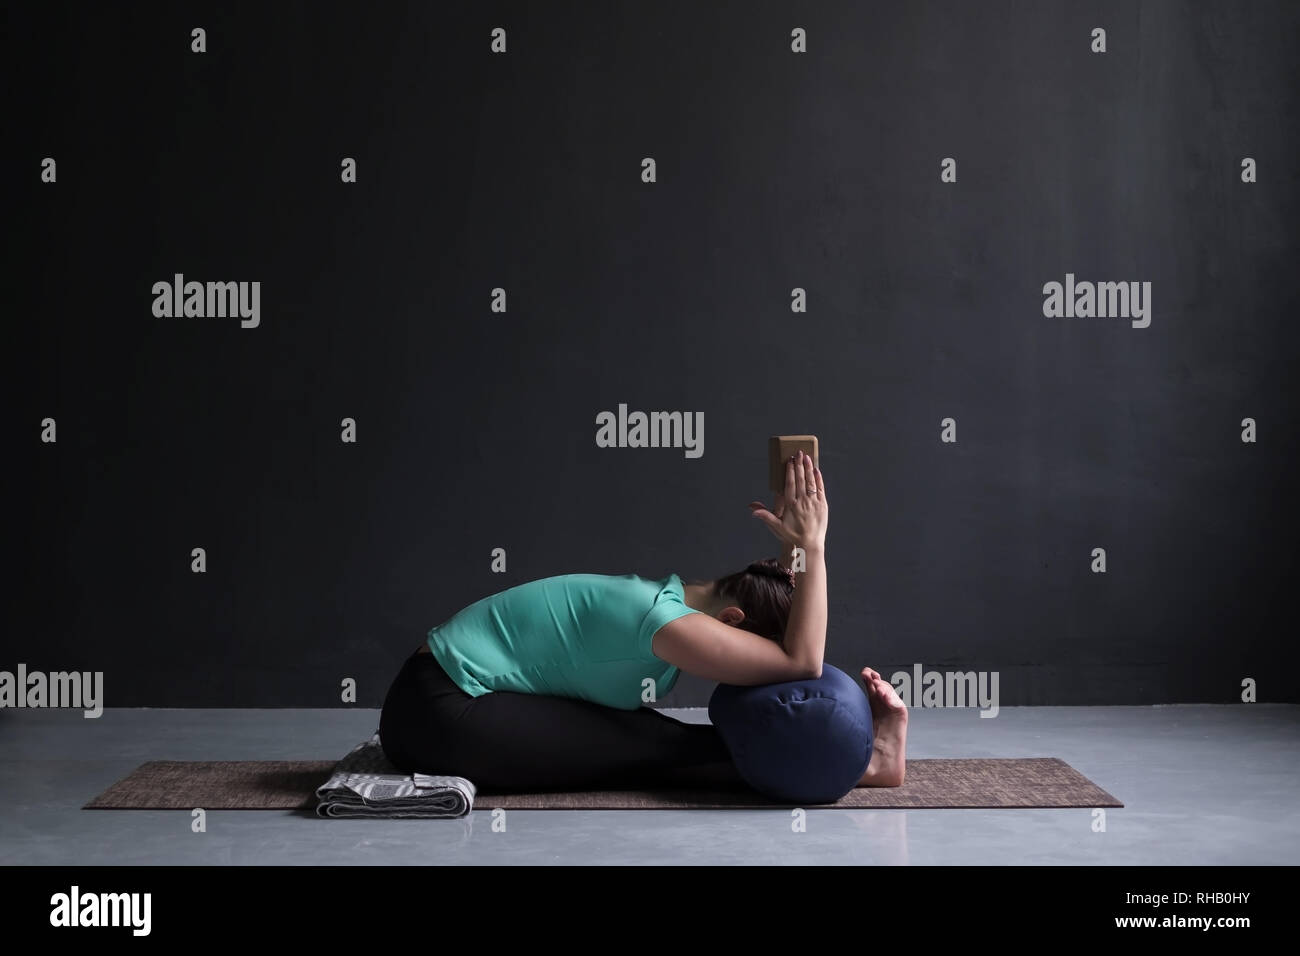 woman practicing yoga, Seated forward bend pose, using block and bolster - Stock Image